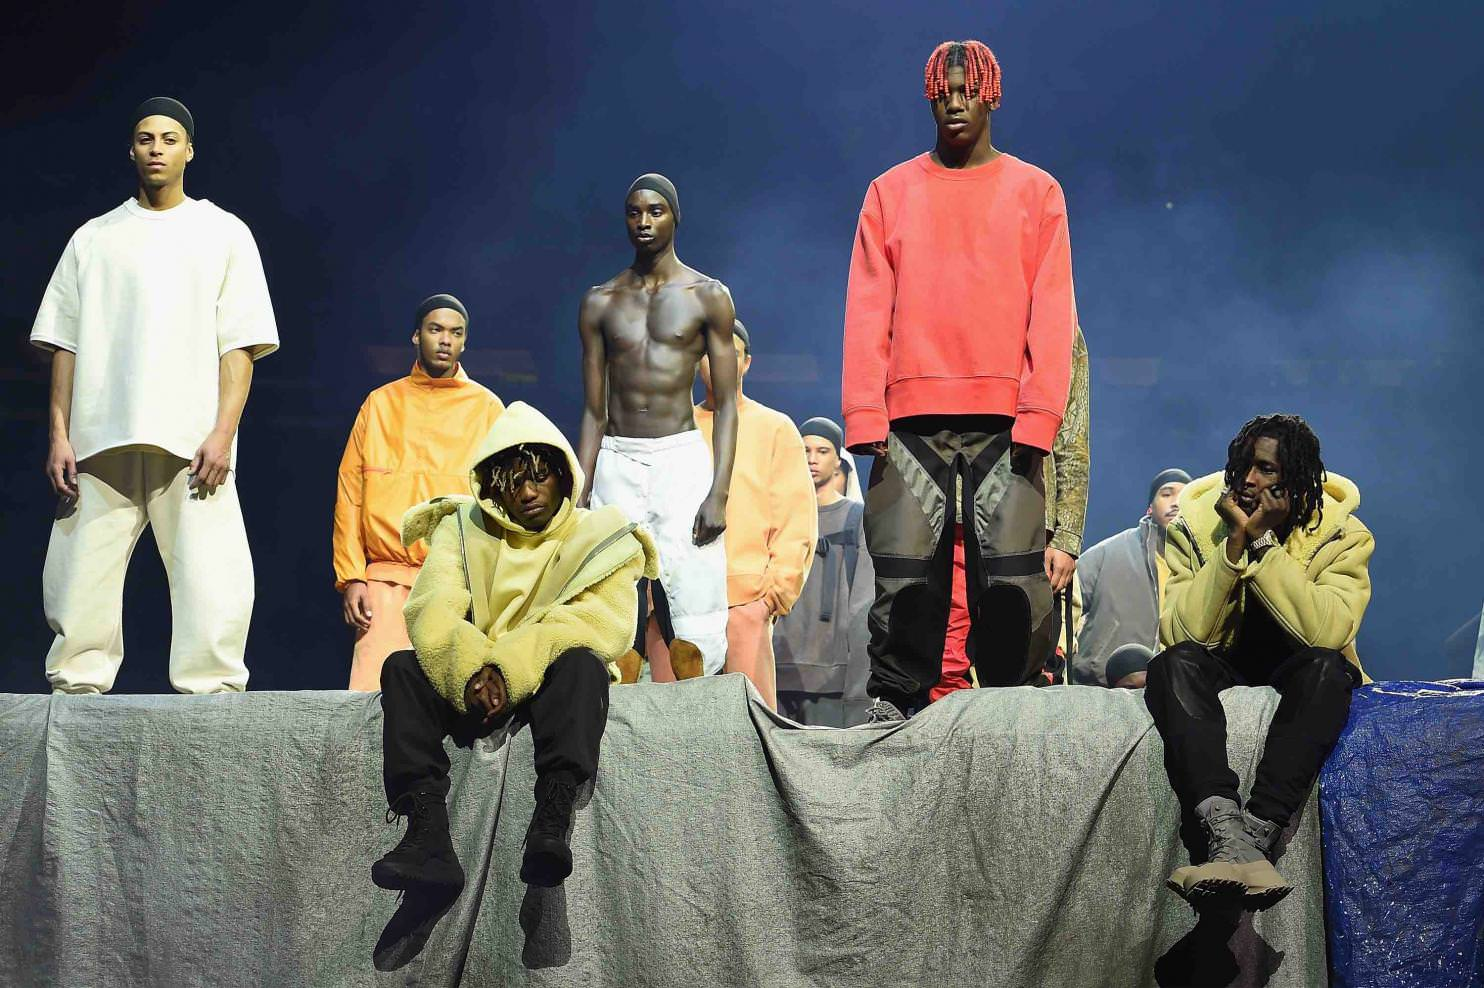 Kanye Westu0027s Yeezy Season 3 At Madison Square Garden In New York